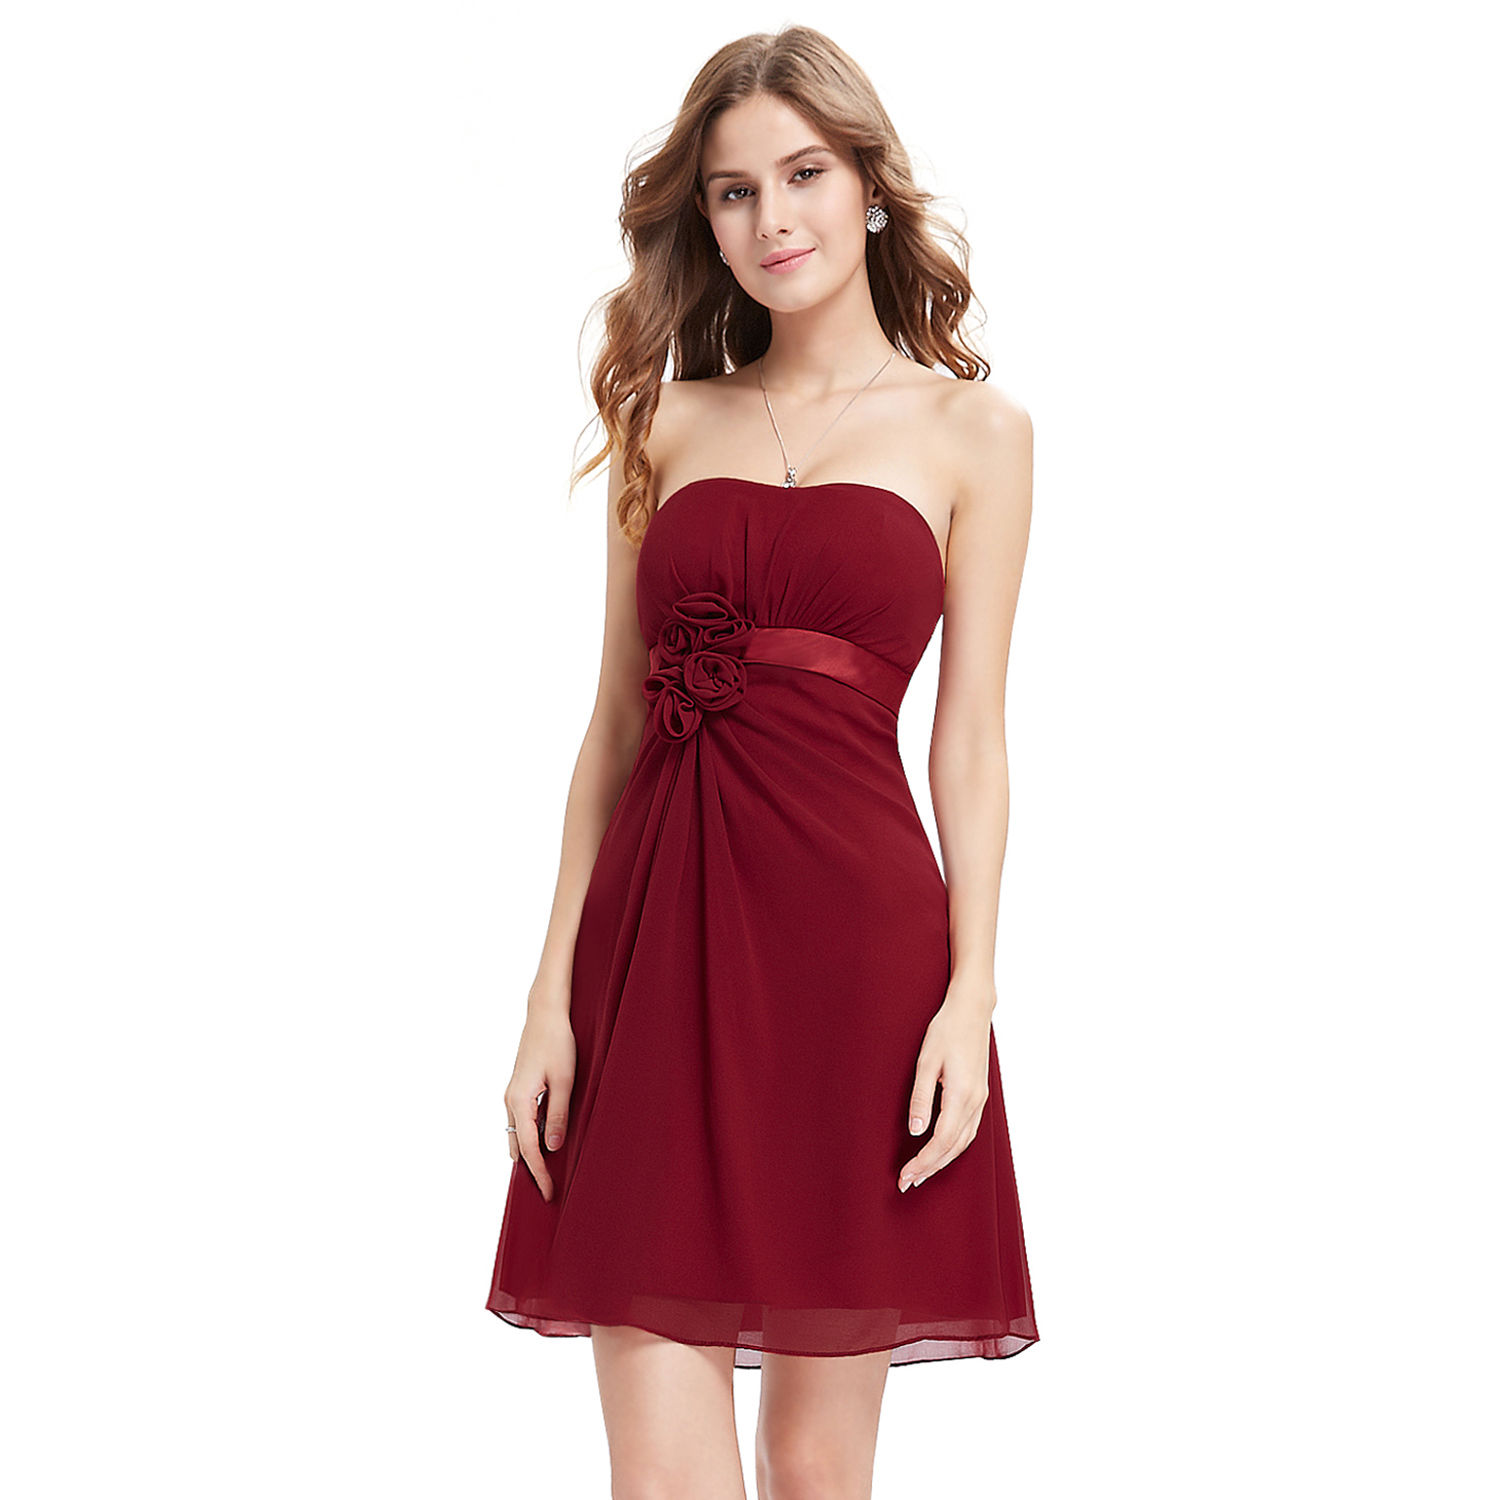 Dark Red Short Chiffon Dress Bridesmaid, Prom Party Size 4